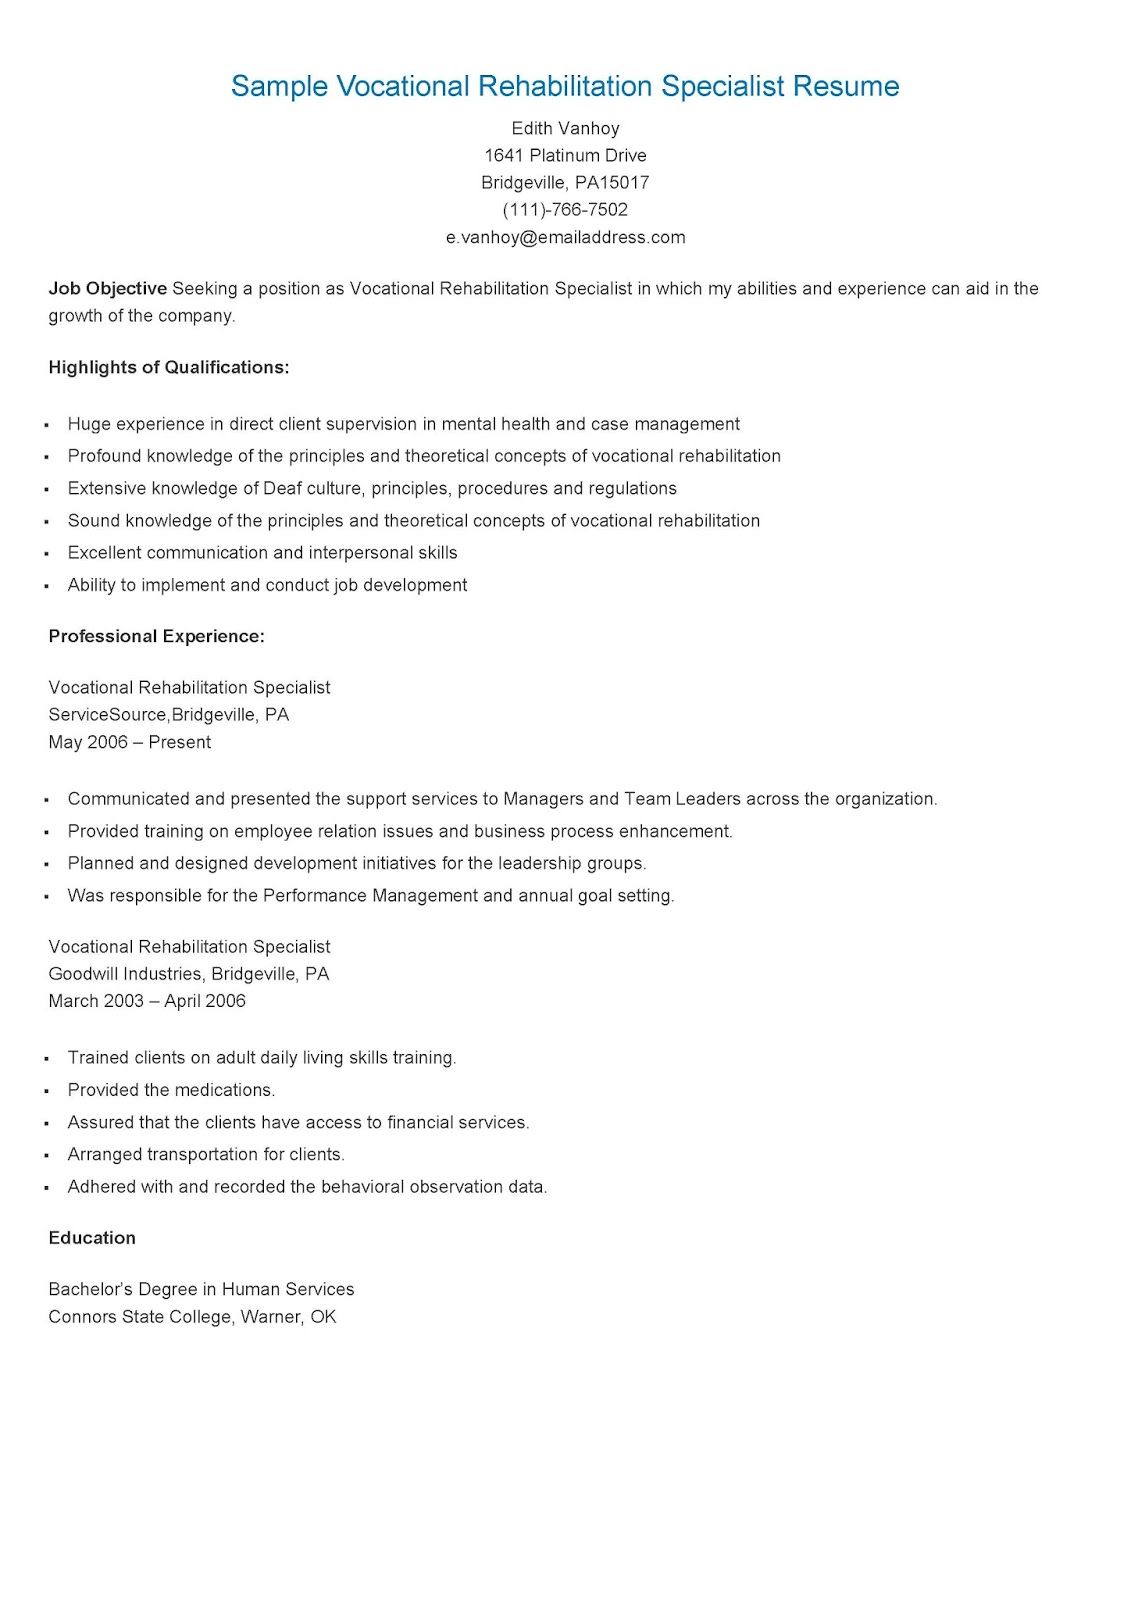 Sample Vocational Rehabilitation Specialist Resume Resame